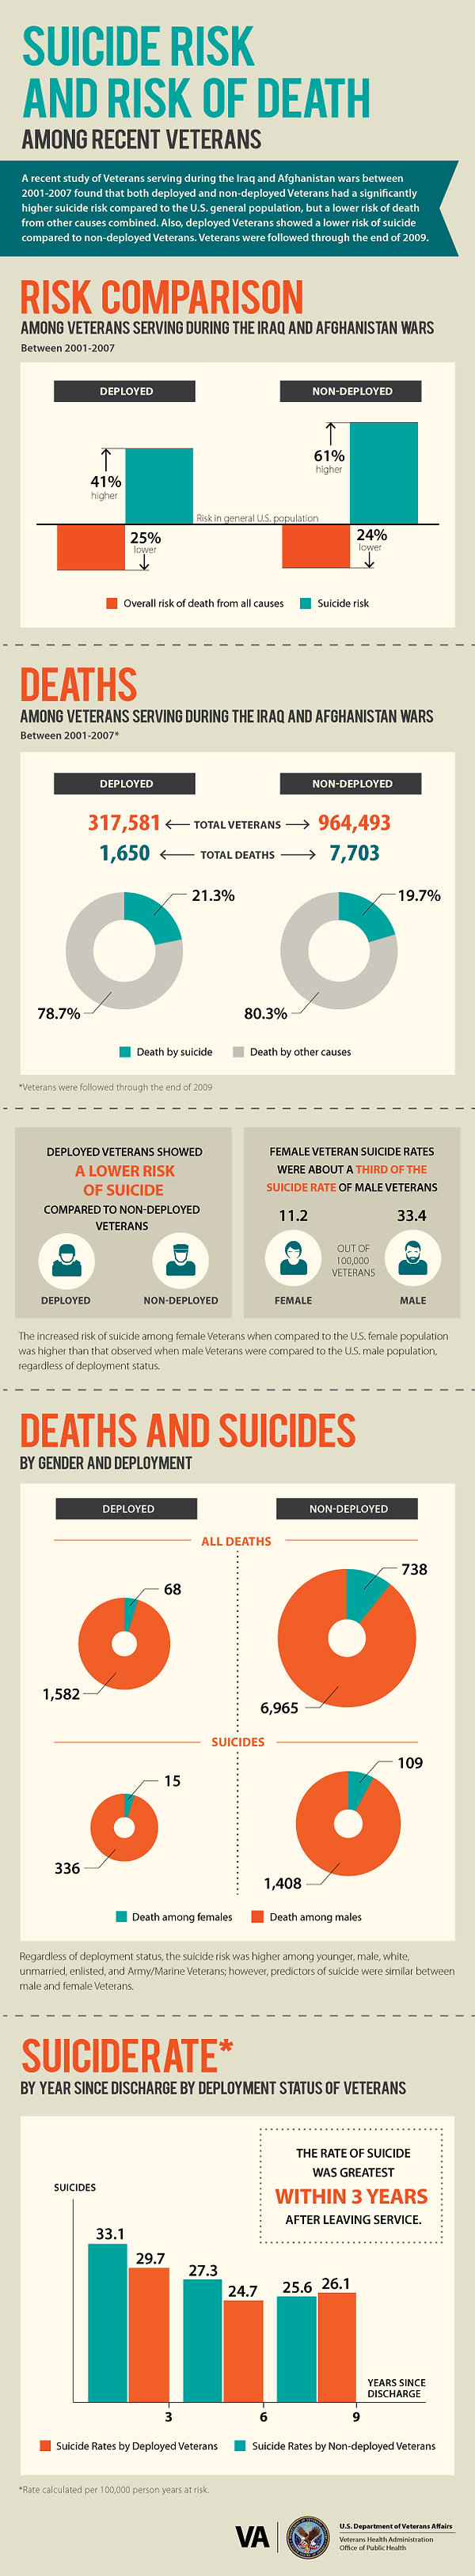 suicide_risk_infographic.jpg